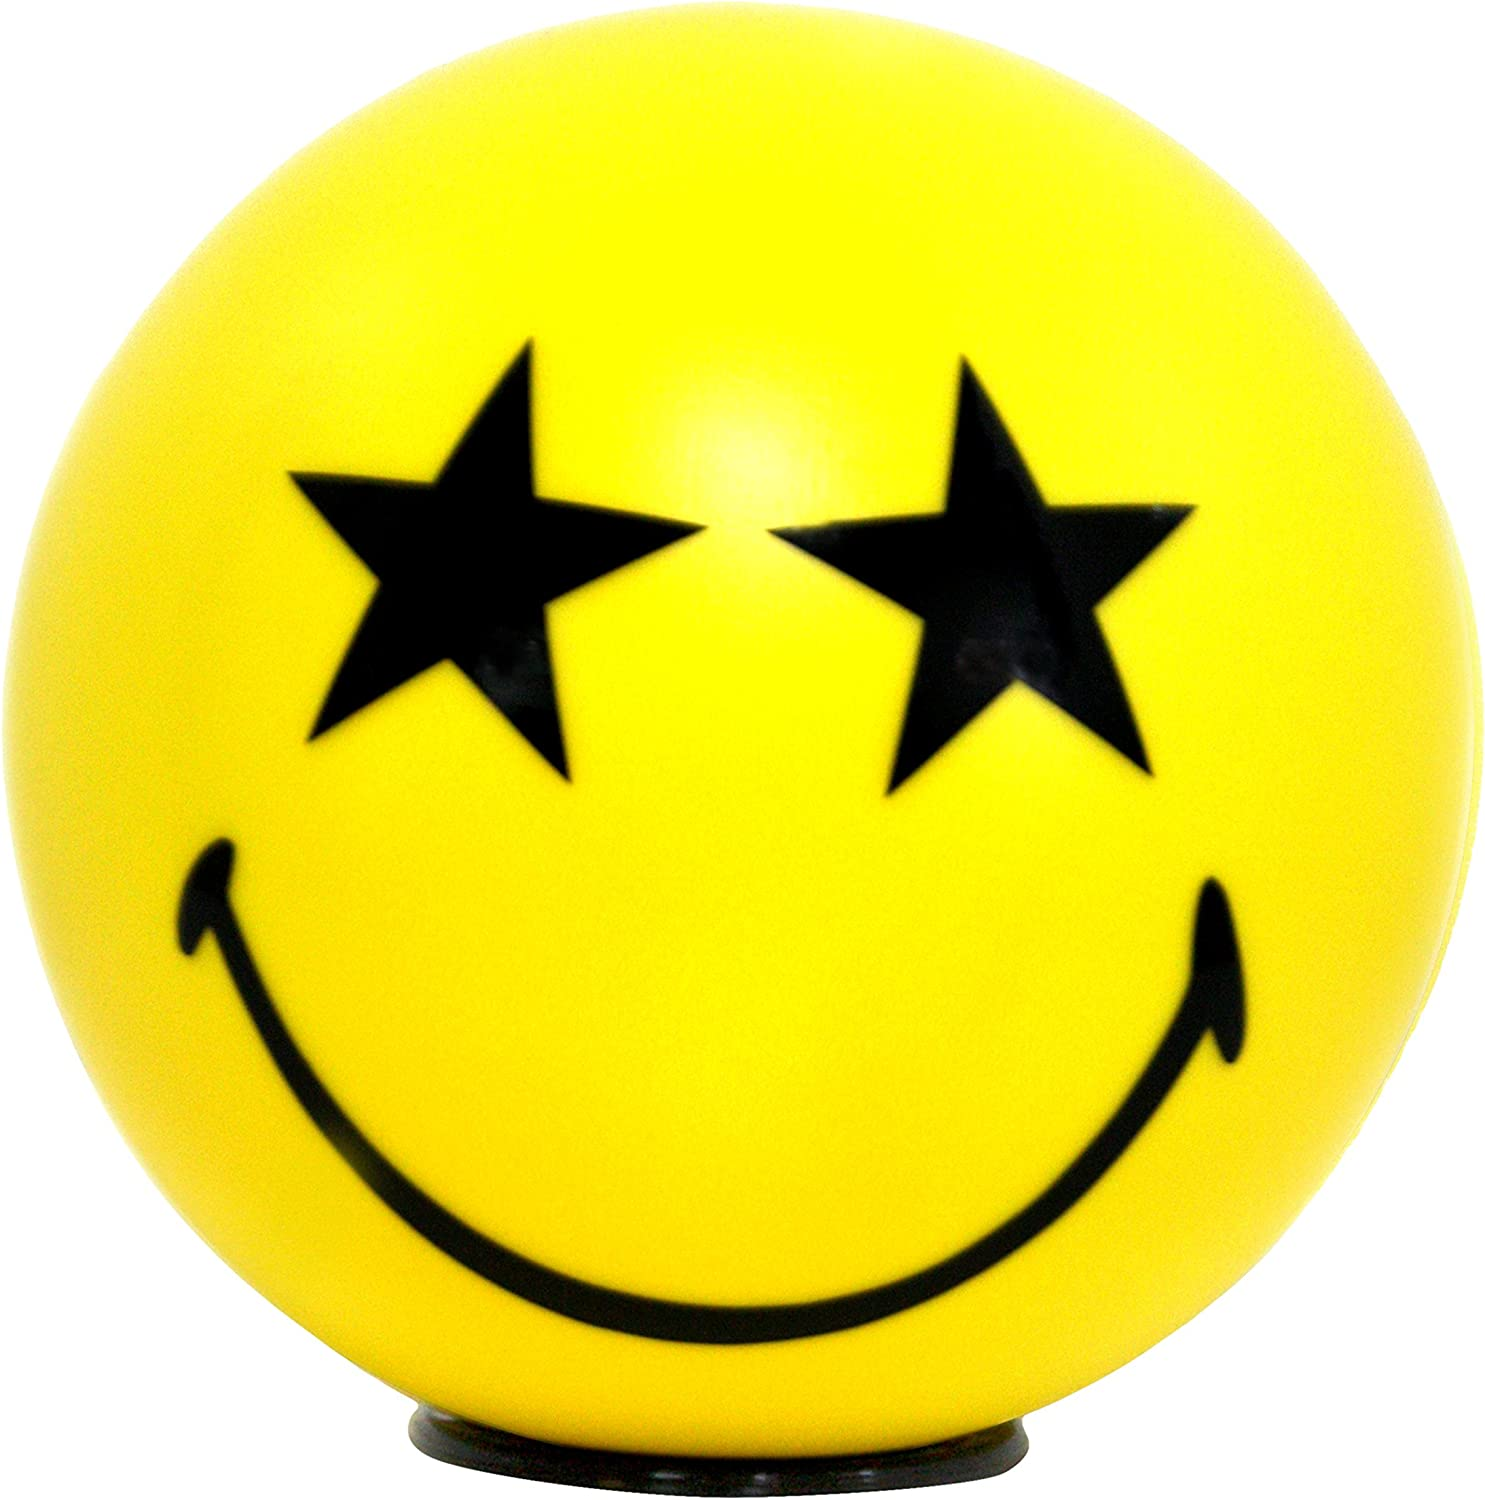 Smiley World IL 01101 03684 LAMPE SMILEY STEEZY LED